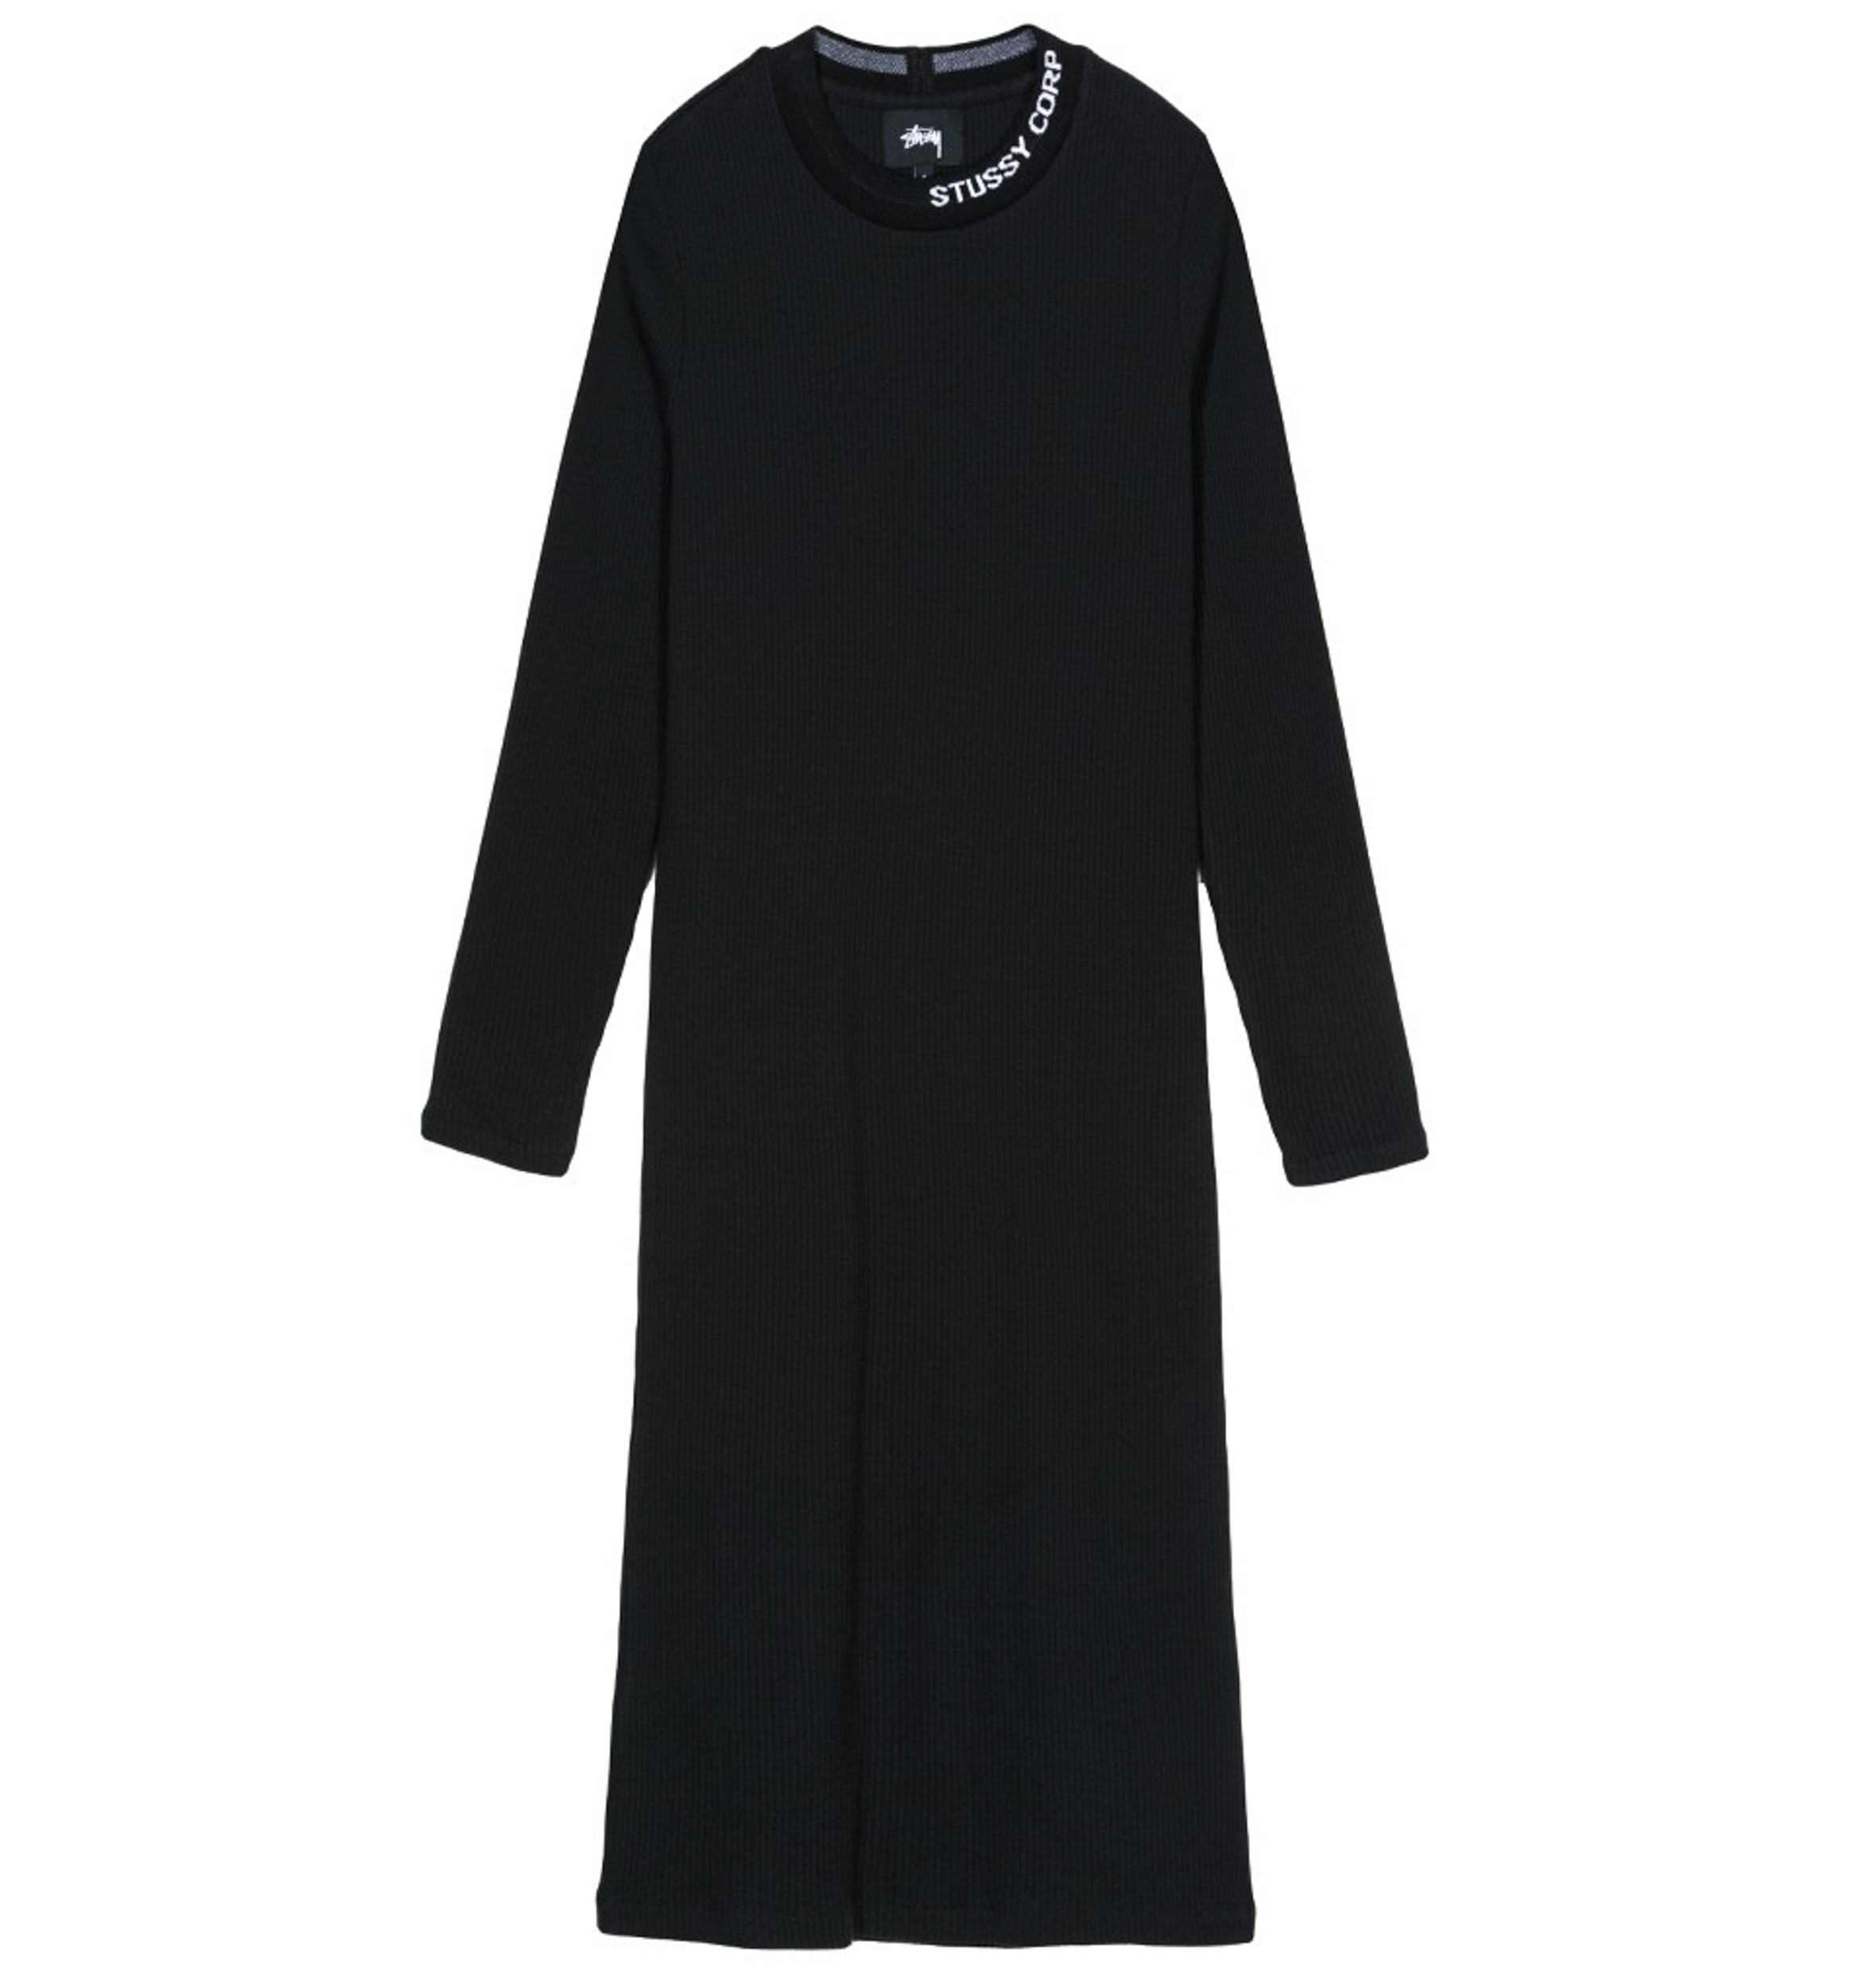 Stussy Temple LS Rib Dress Black